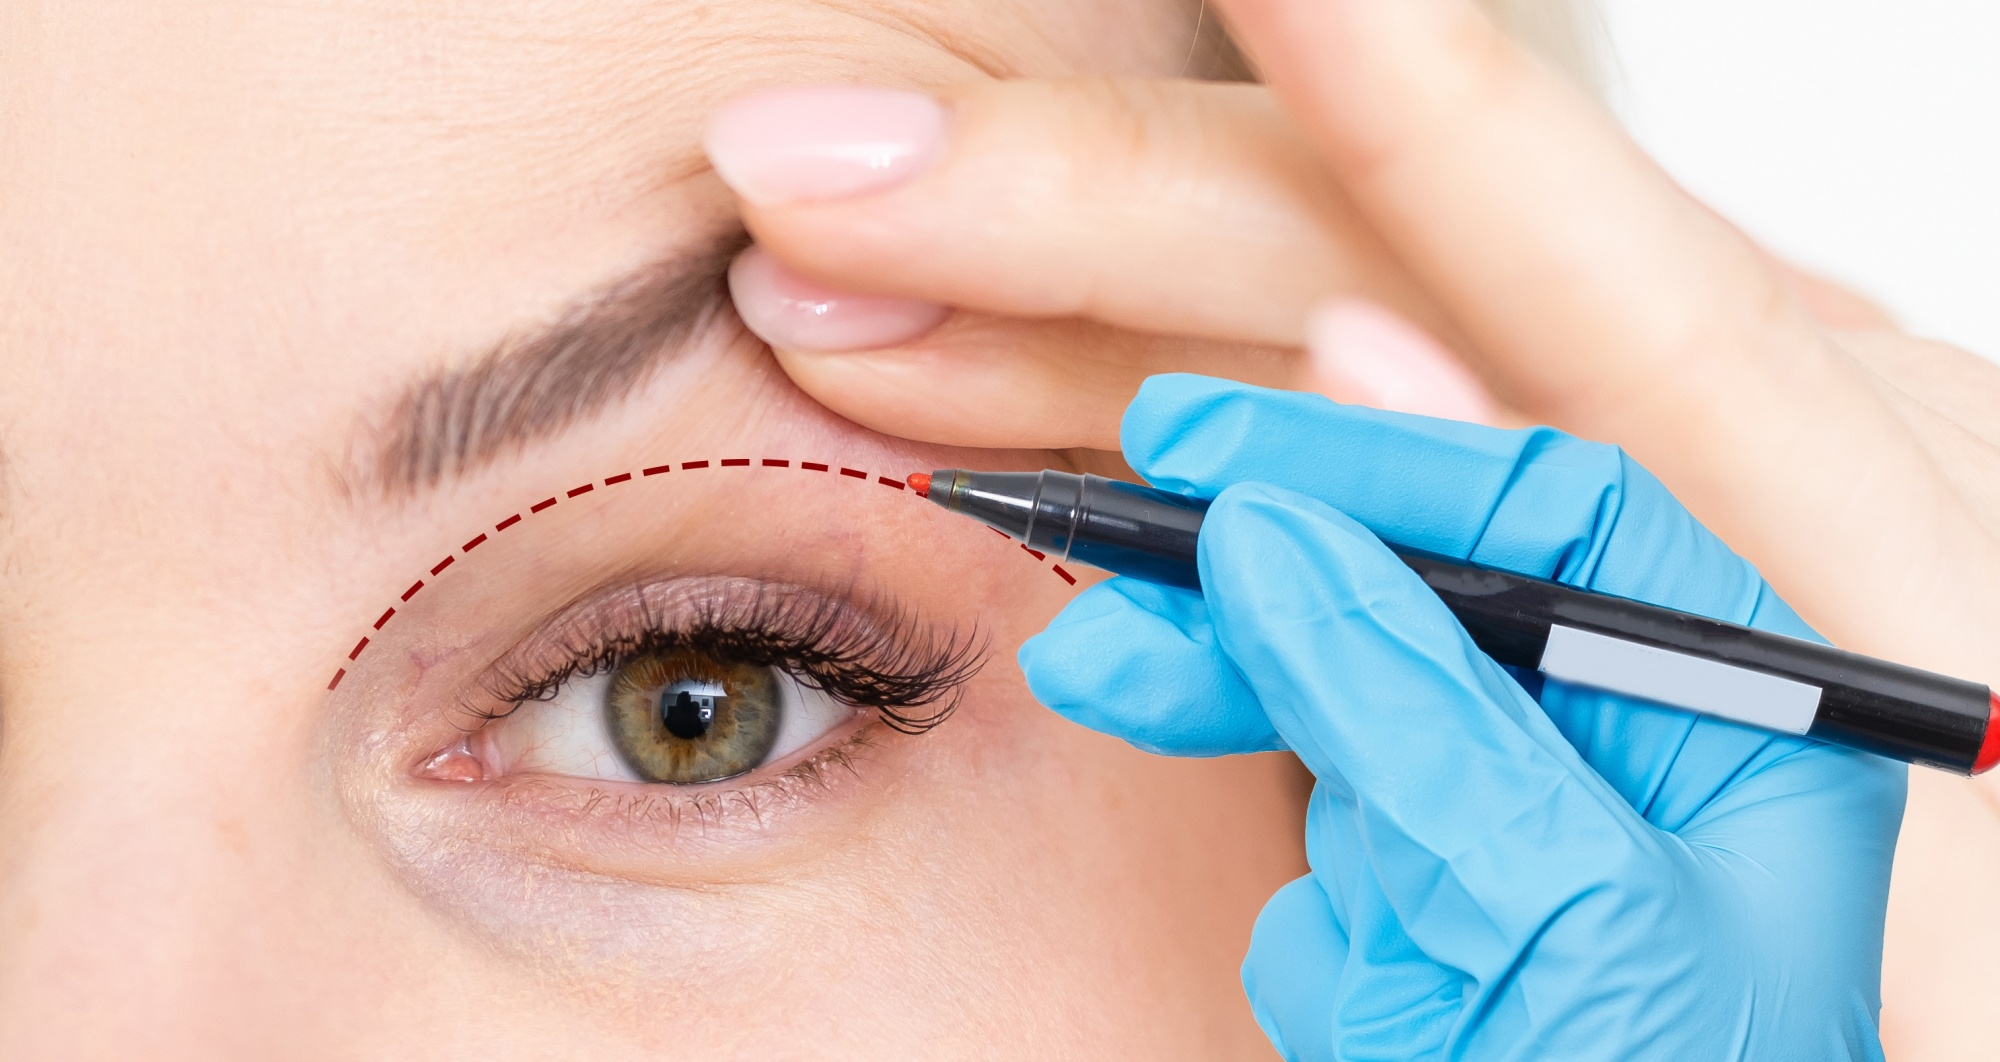 drooping eyelid common beauty questions